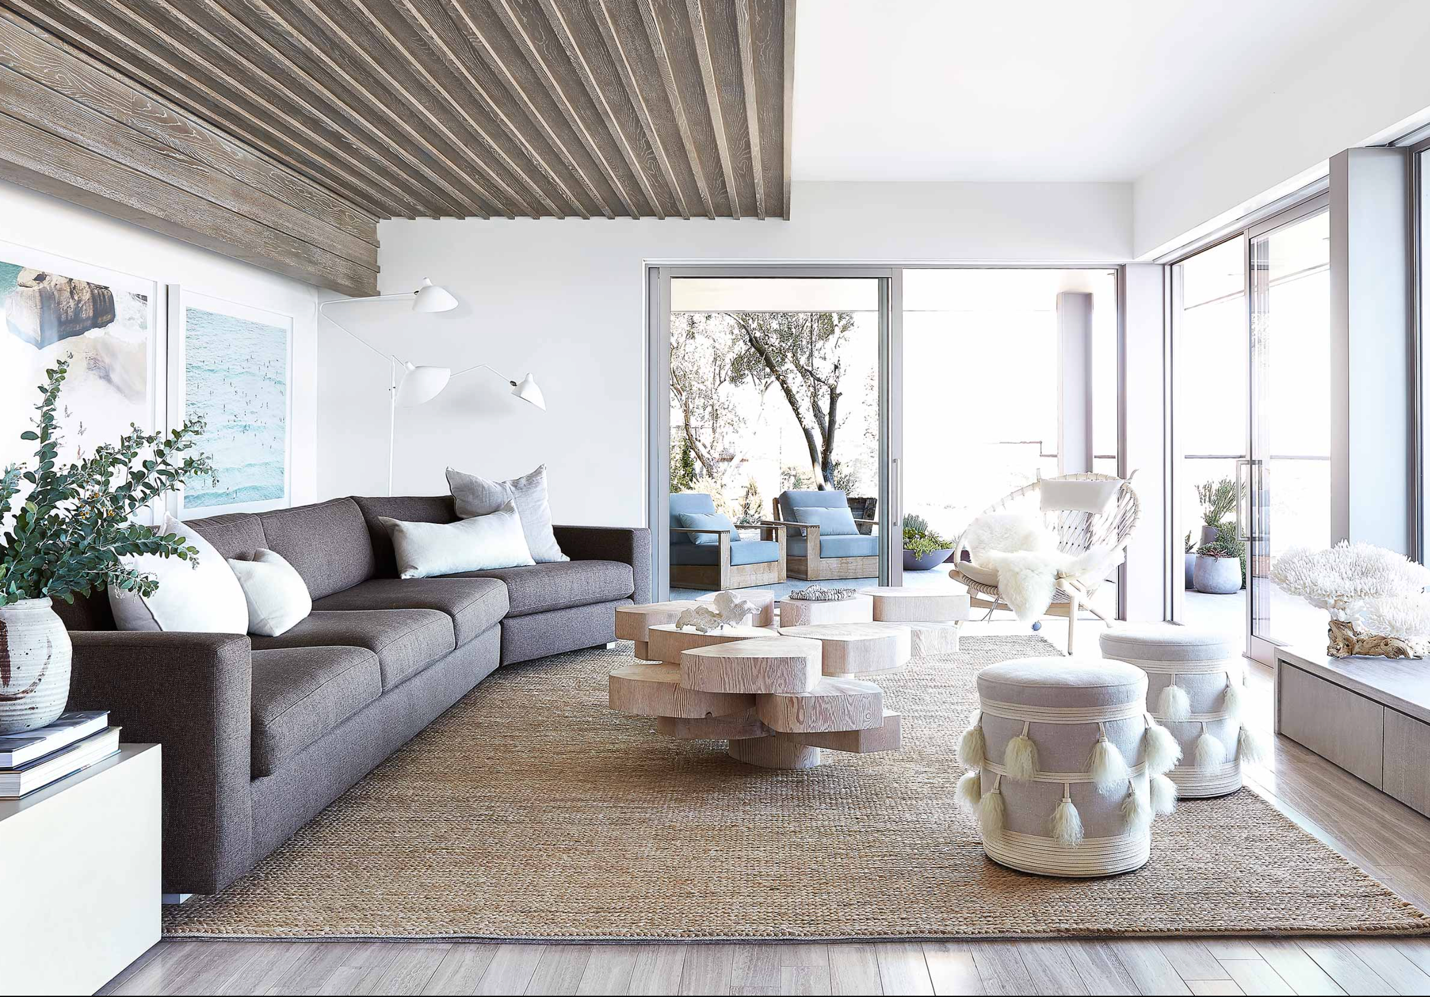 Top 15 Interior Design Trends For 2020 Collected Interior Design